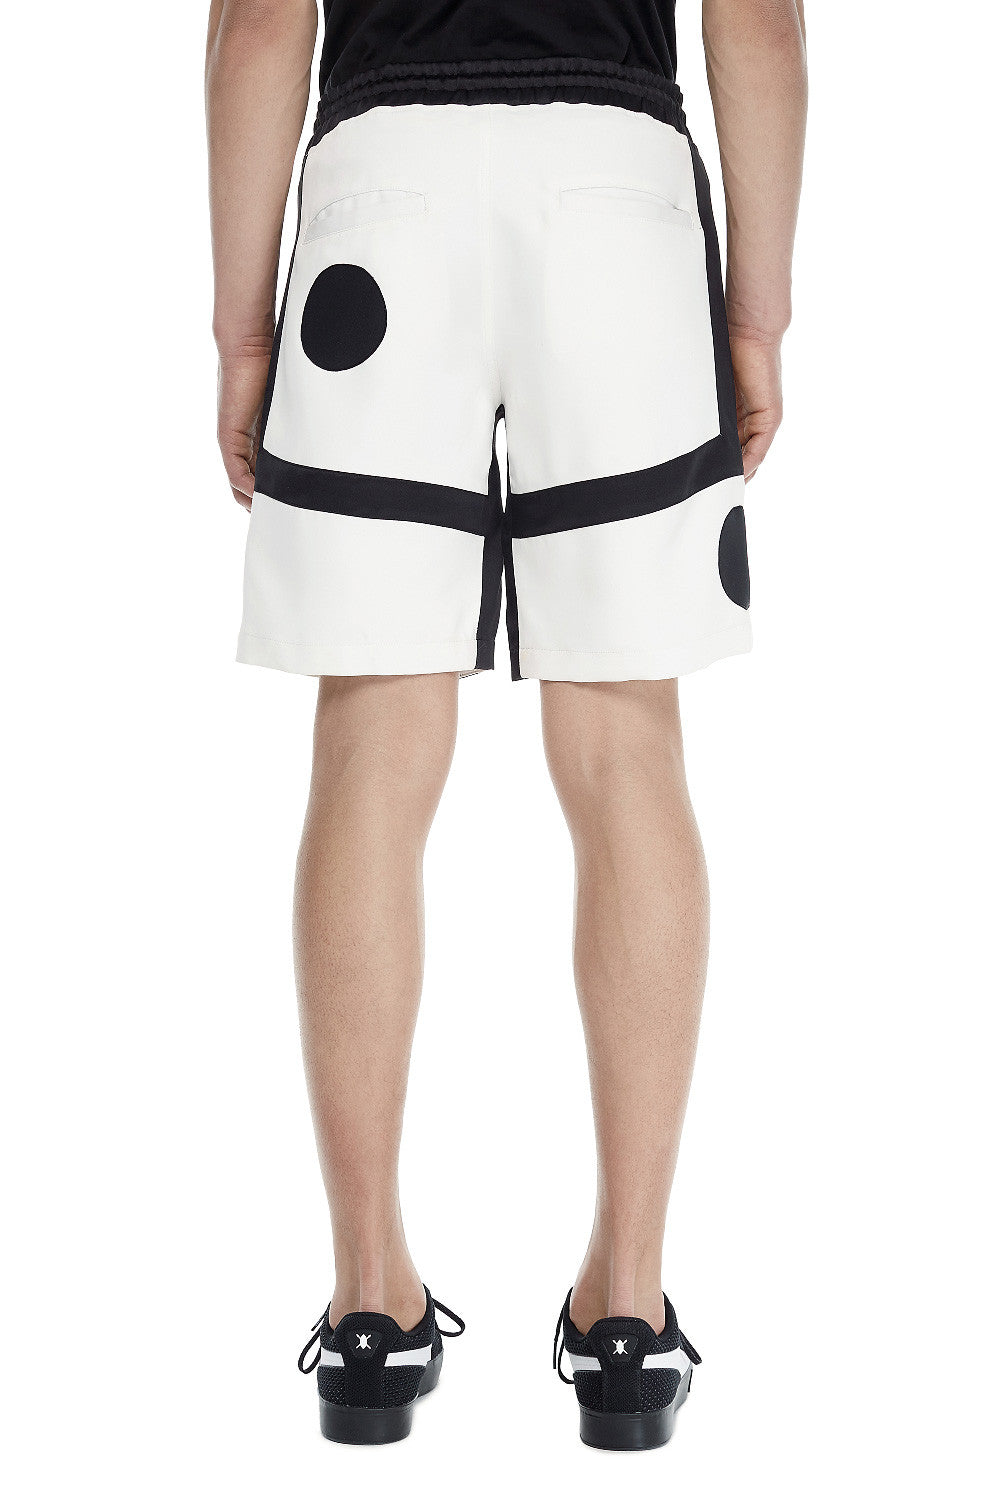 White/Black Short